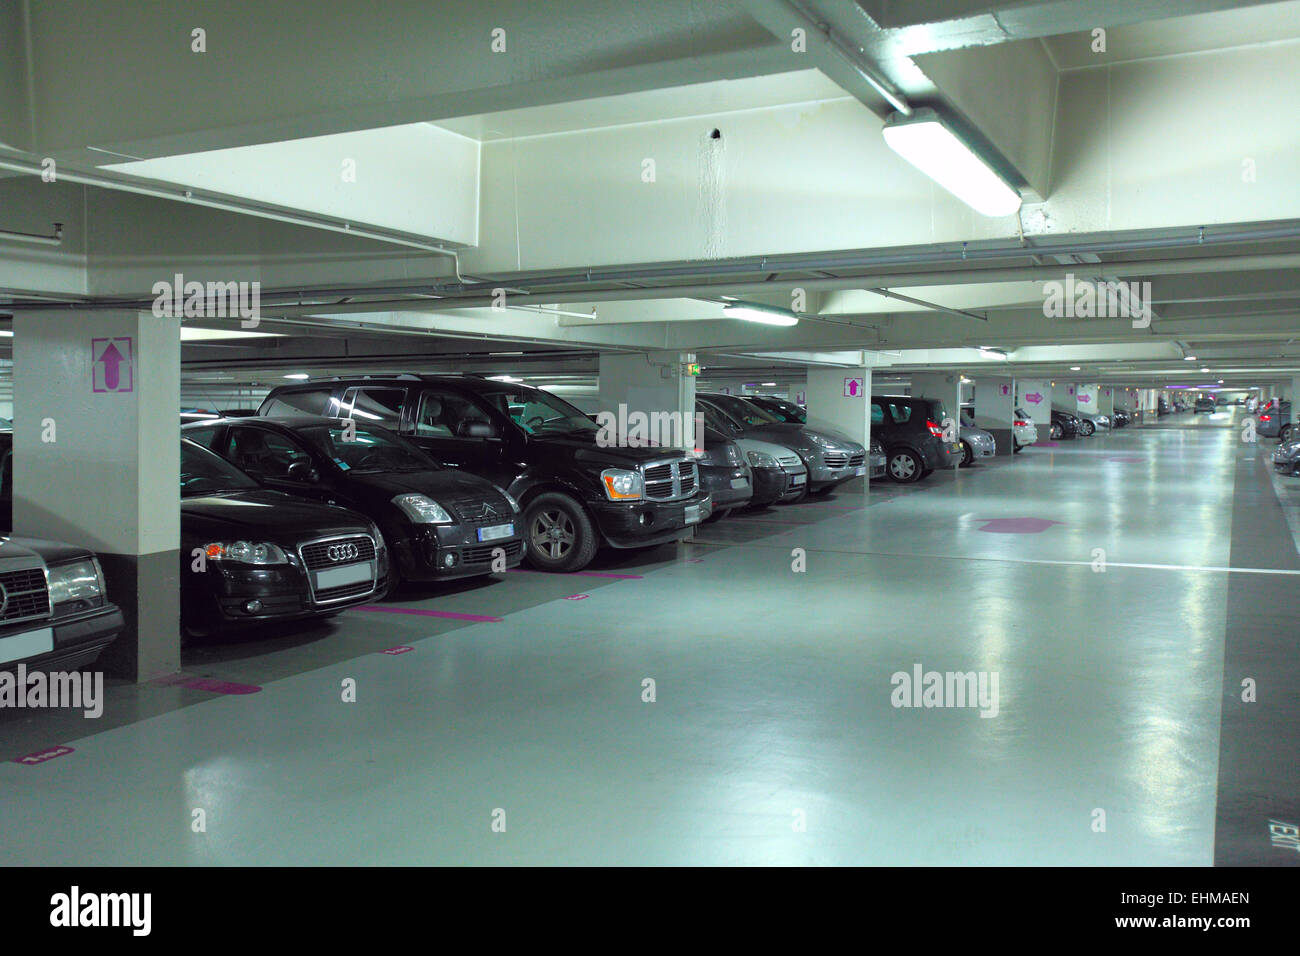 Car Lift To Basement Garage Underground Parking Garage In France Stock Photo 79737917 Alamy